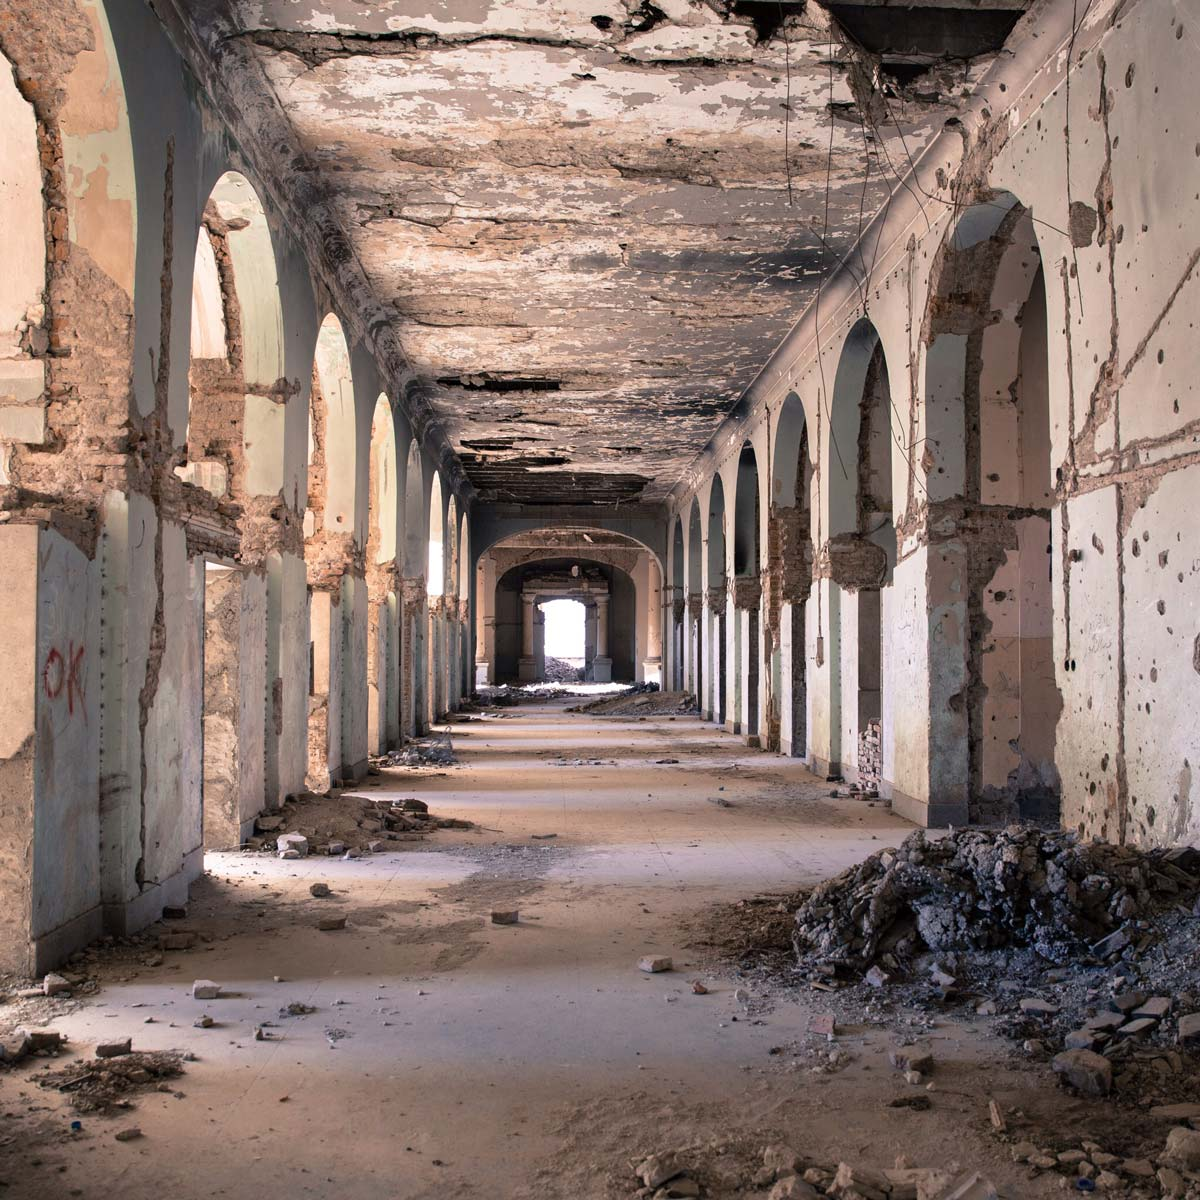 Outer hallway of a deteriorating building